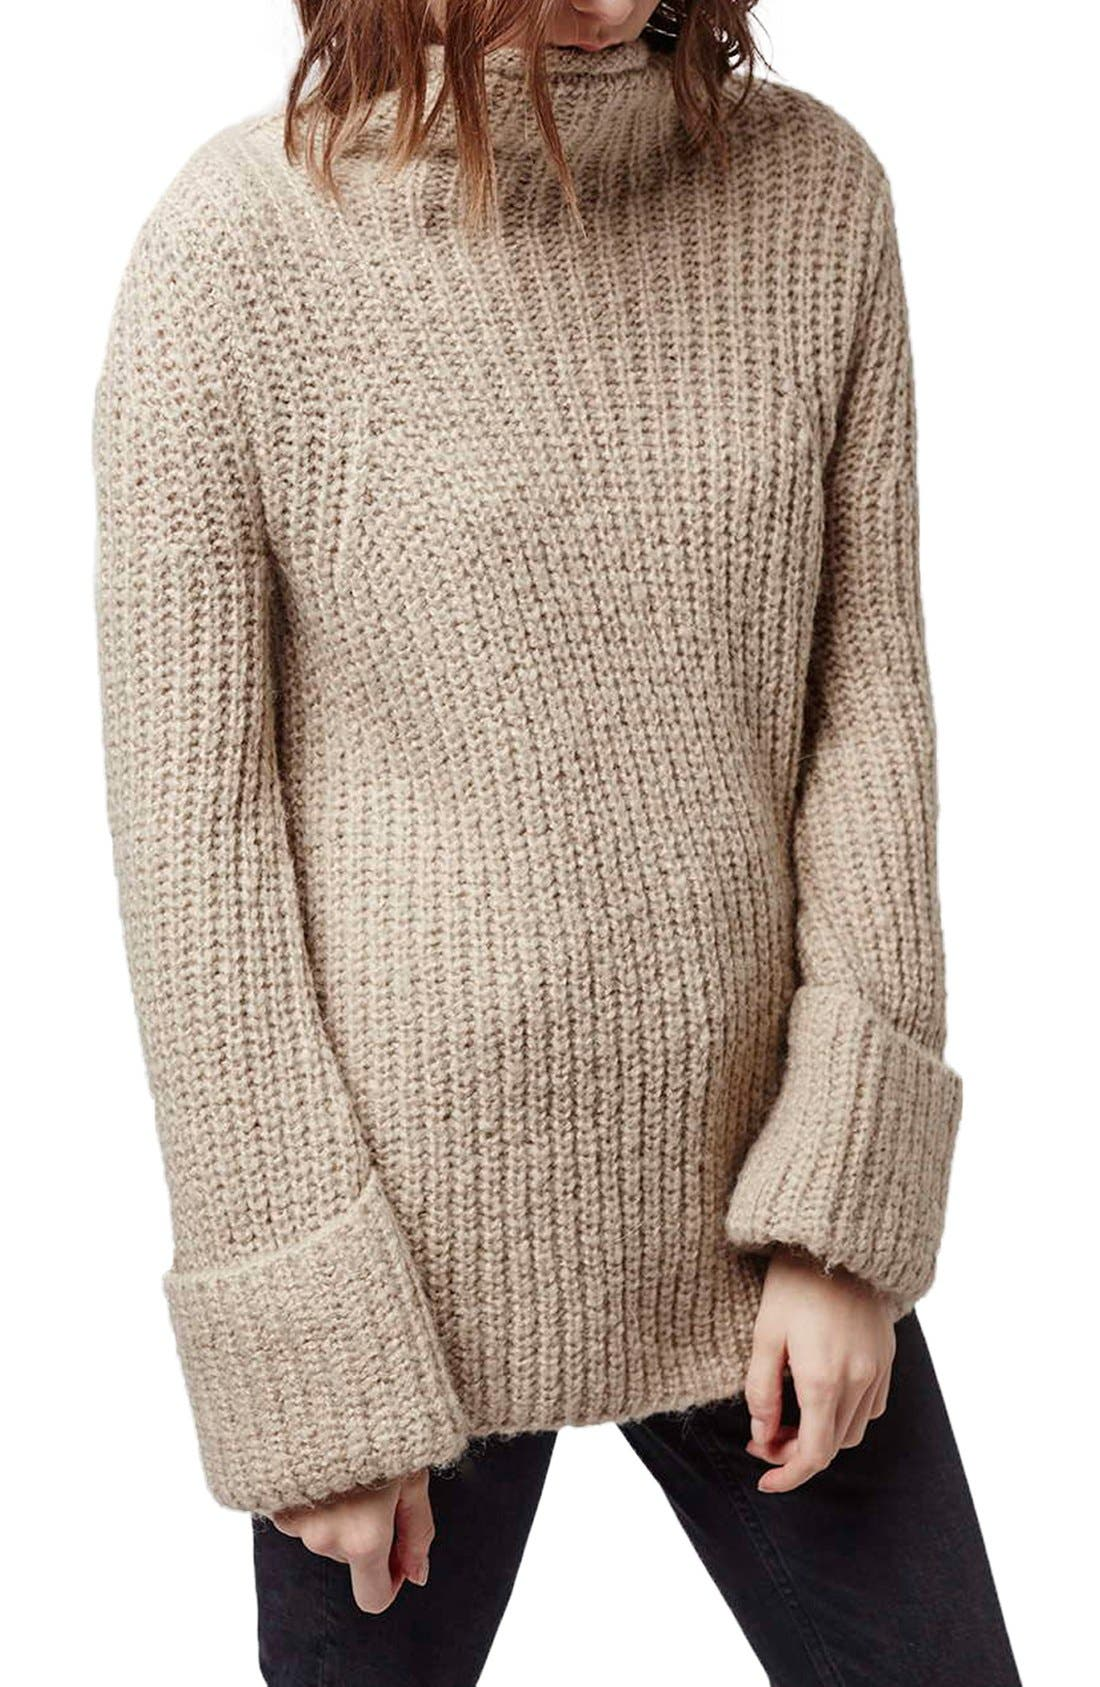 Alternate Image 1 Selected - Topshop 'Jumbo' Funnel Neck Sweater